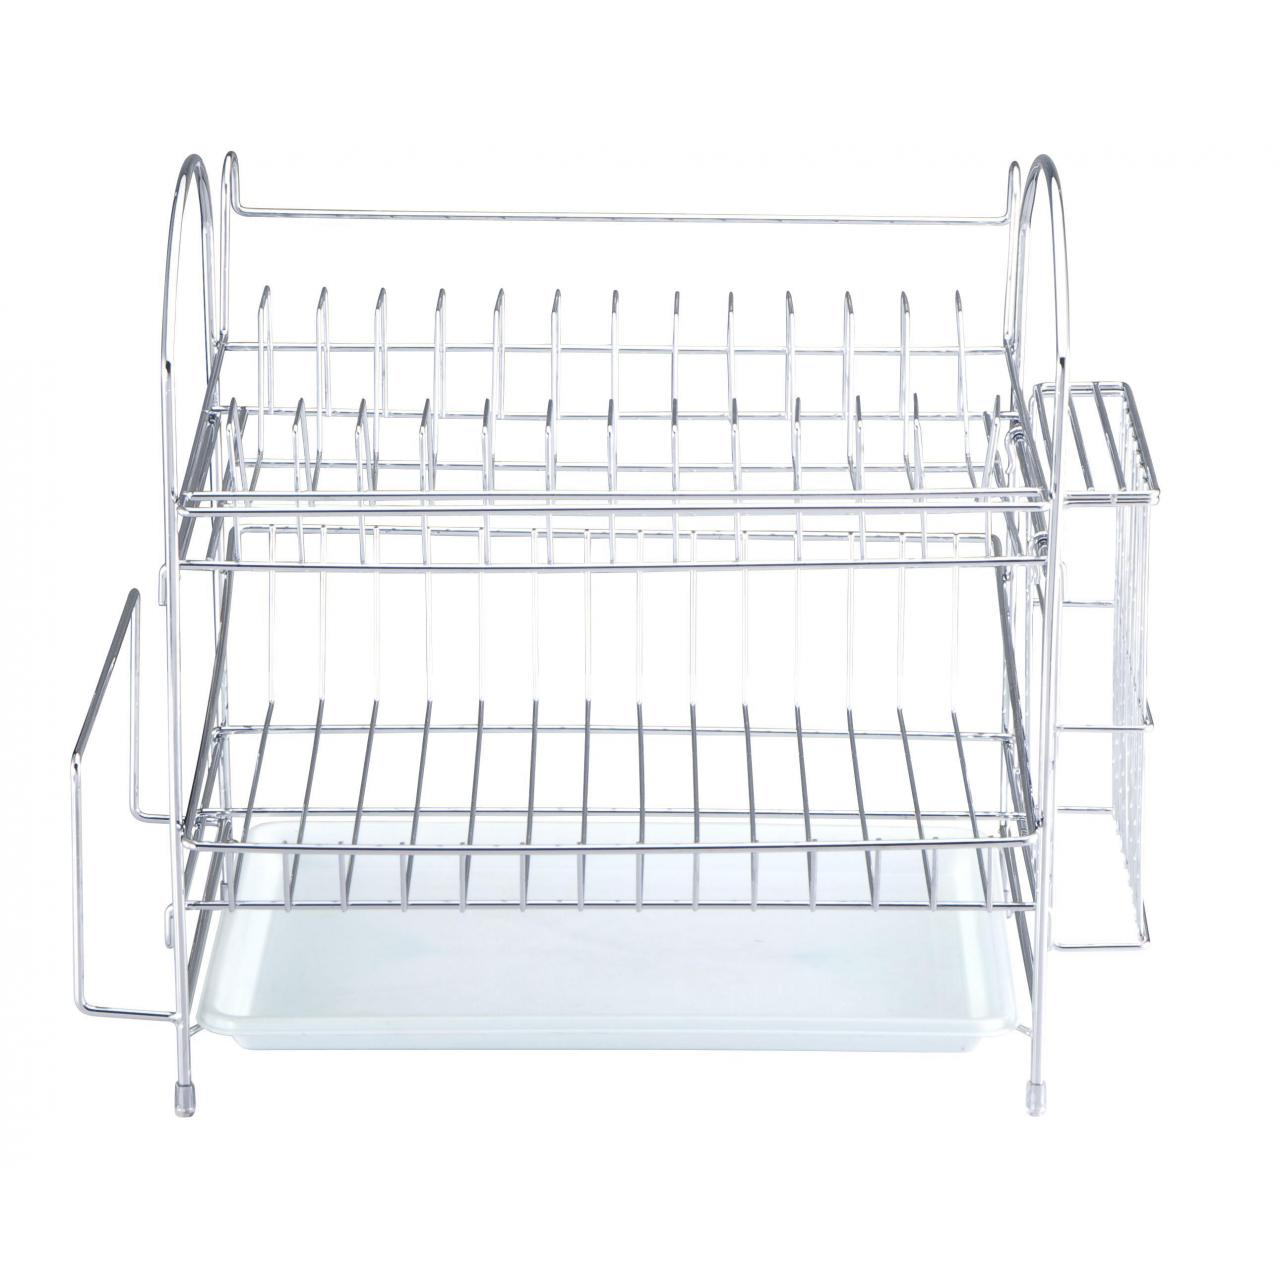 Dish racks Two-tier Metal Dish Rack with Plastic Tray and Holder